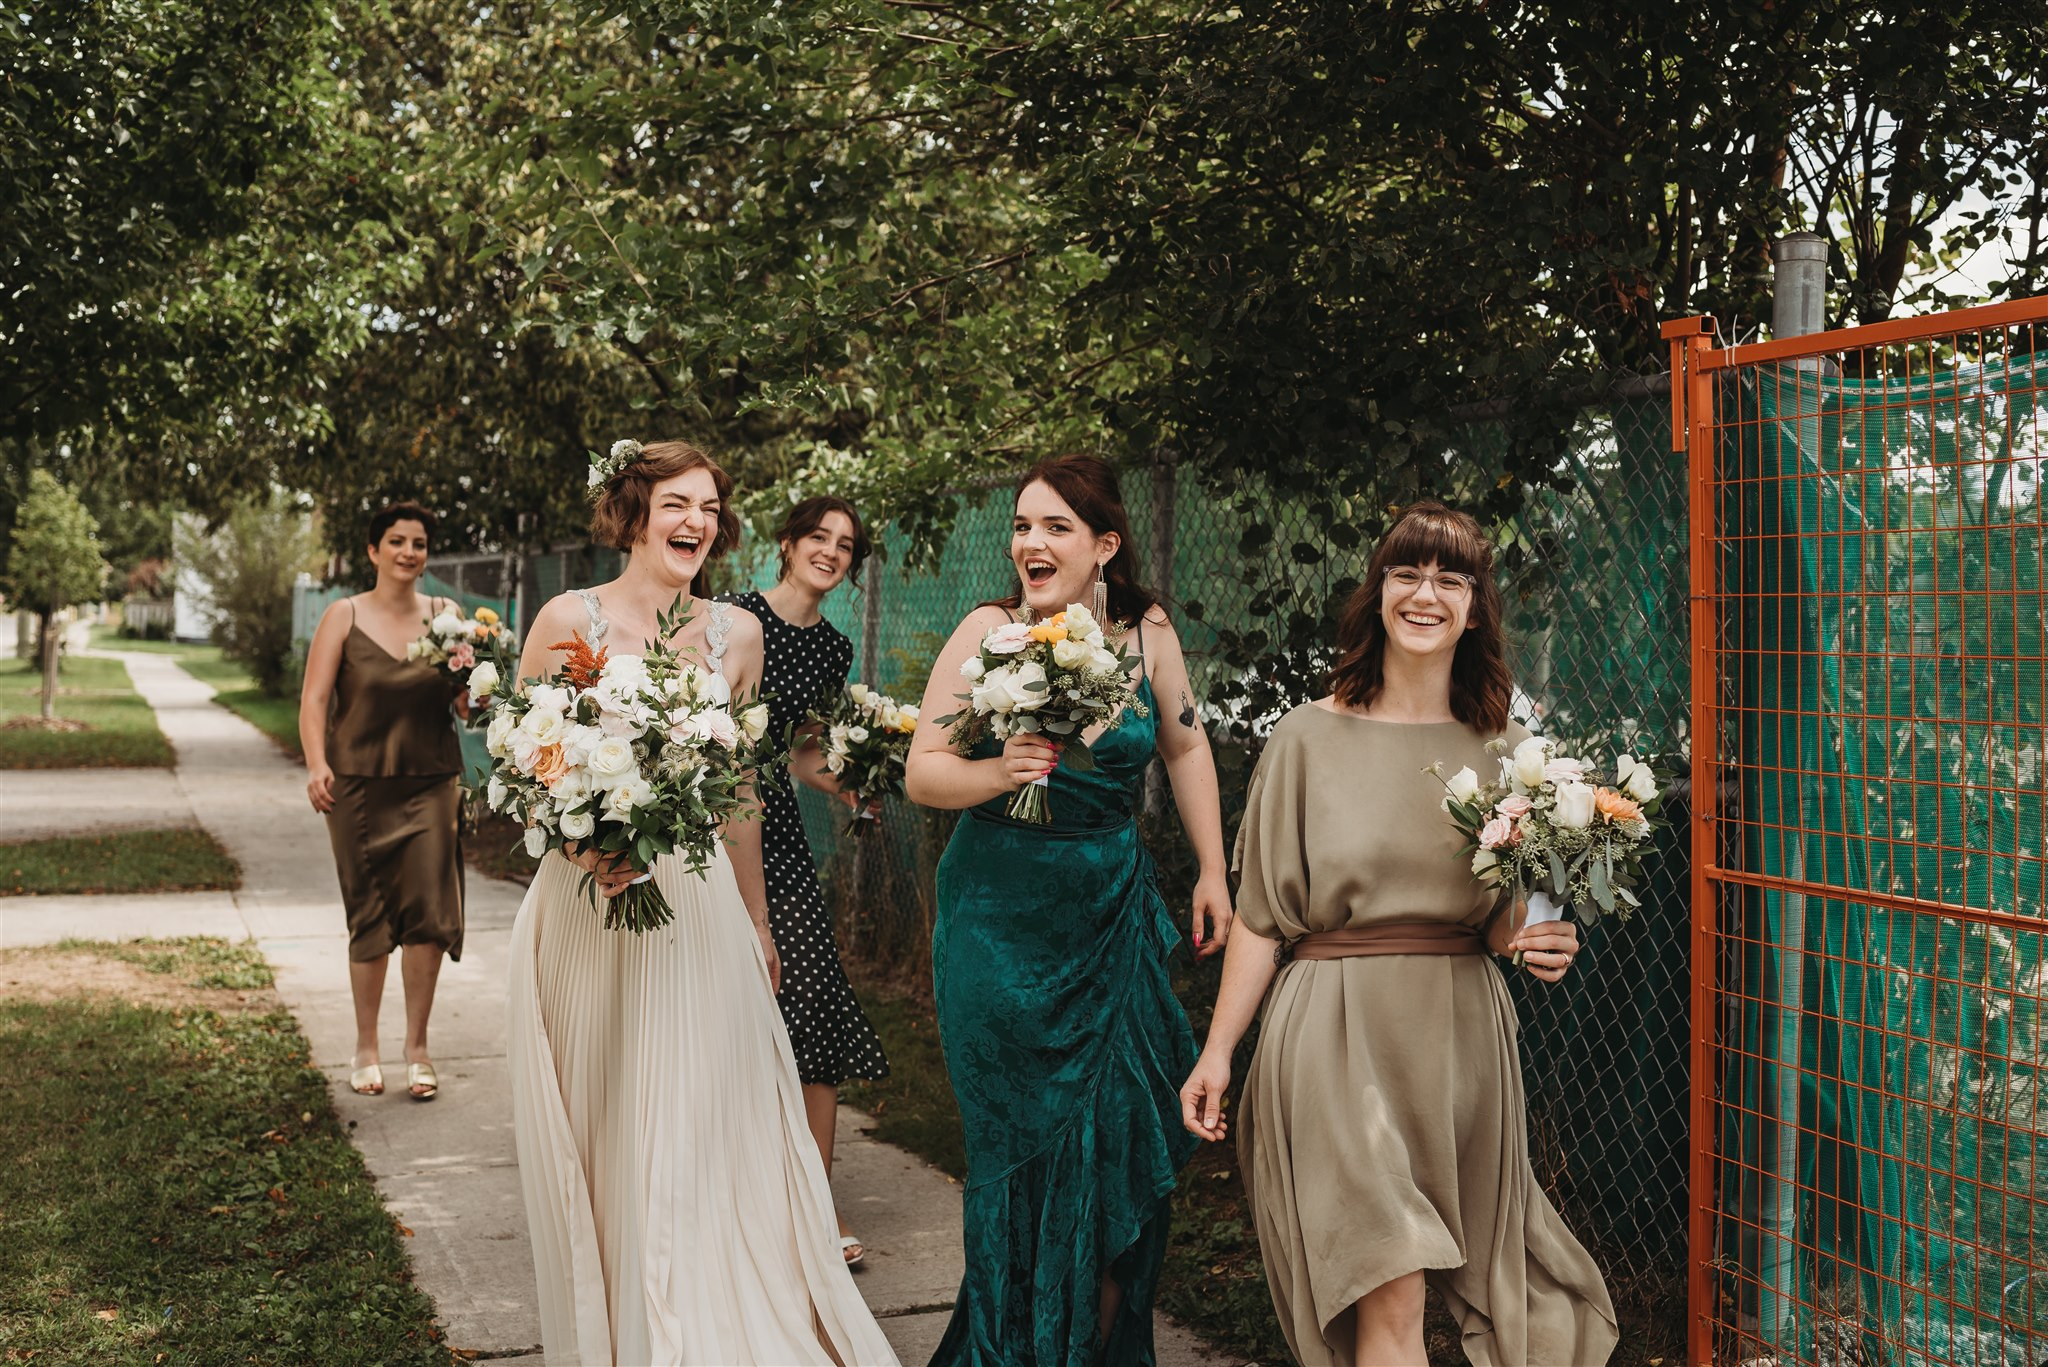 bride walking to ceremony with bridesmaids in green dresses